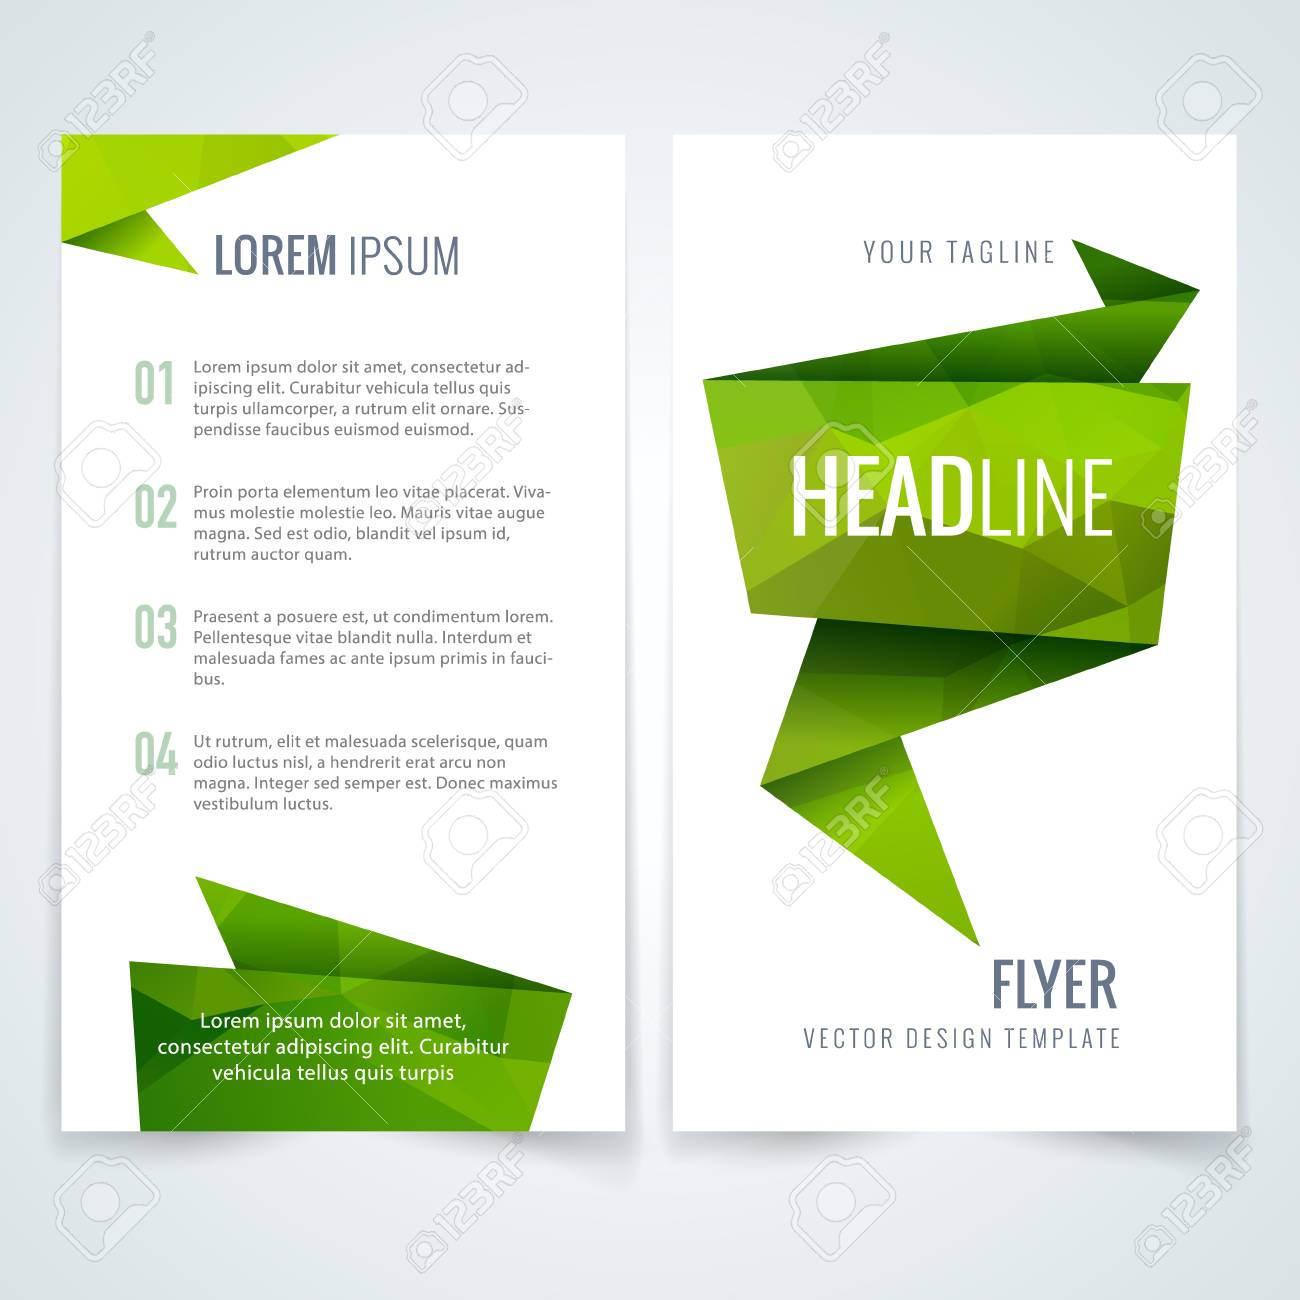 Vector Business Flyer Or Brochure Layout Template With Green